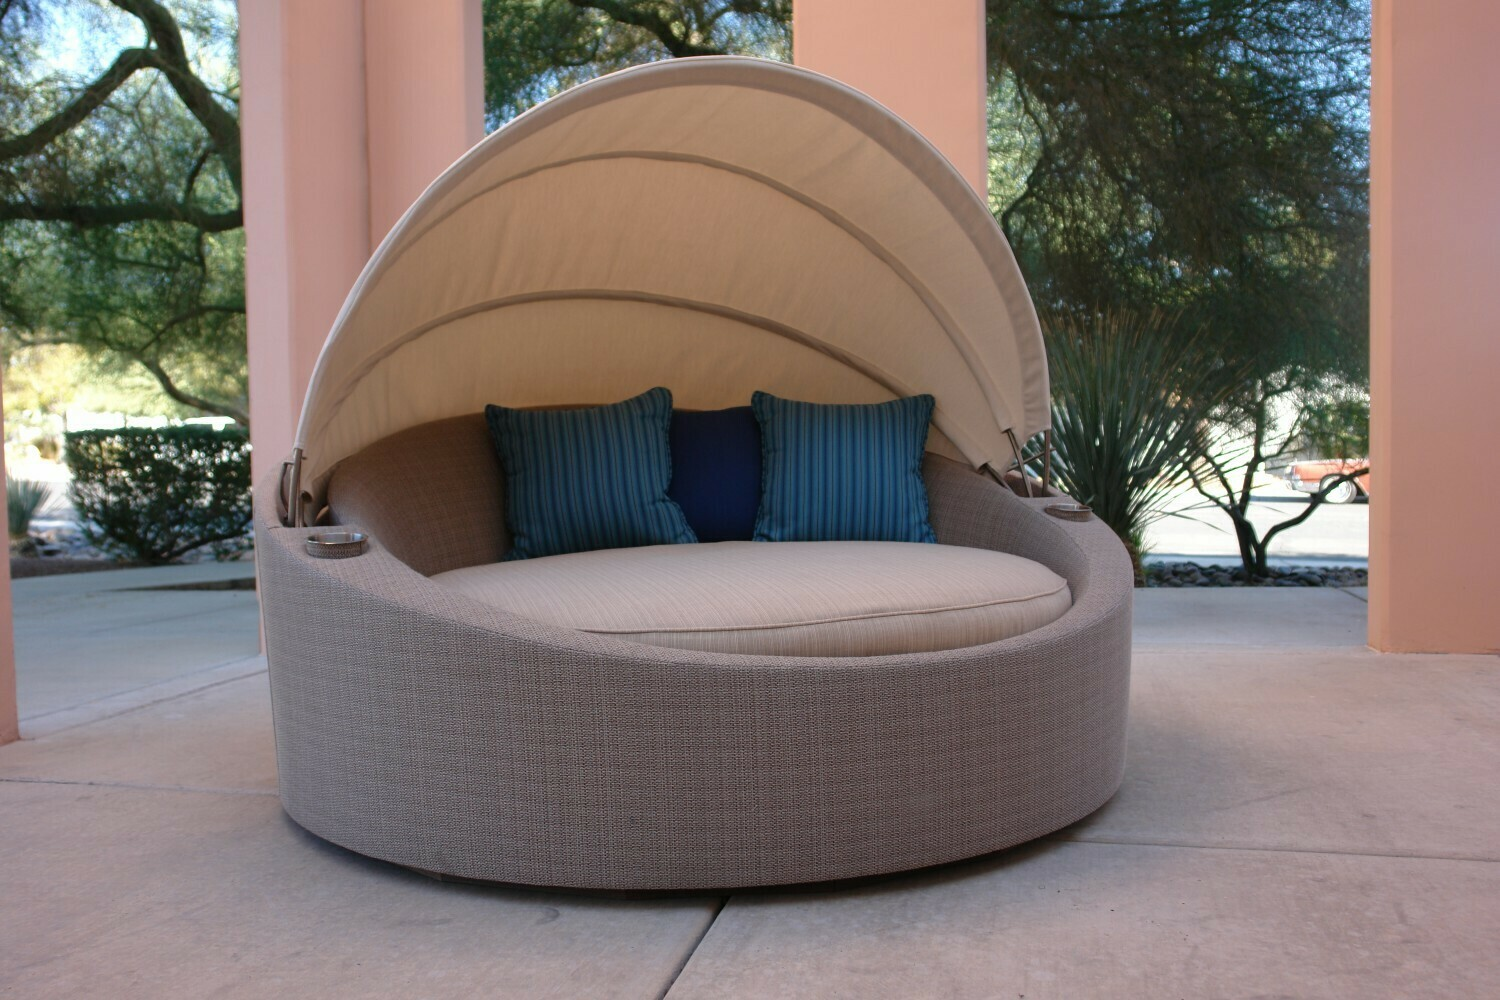 Santa Barbara Round Bed With Canopy-Sample